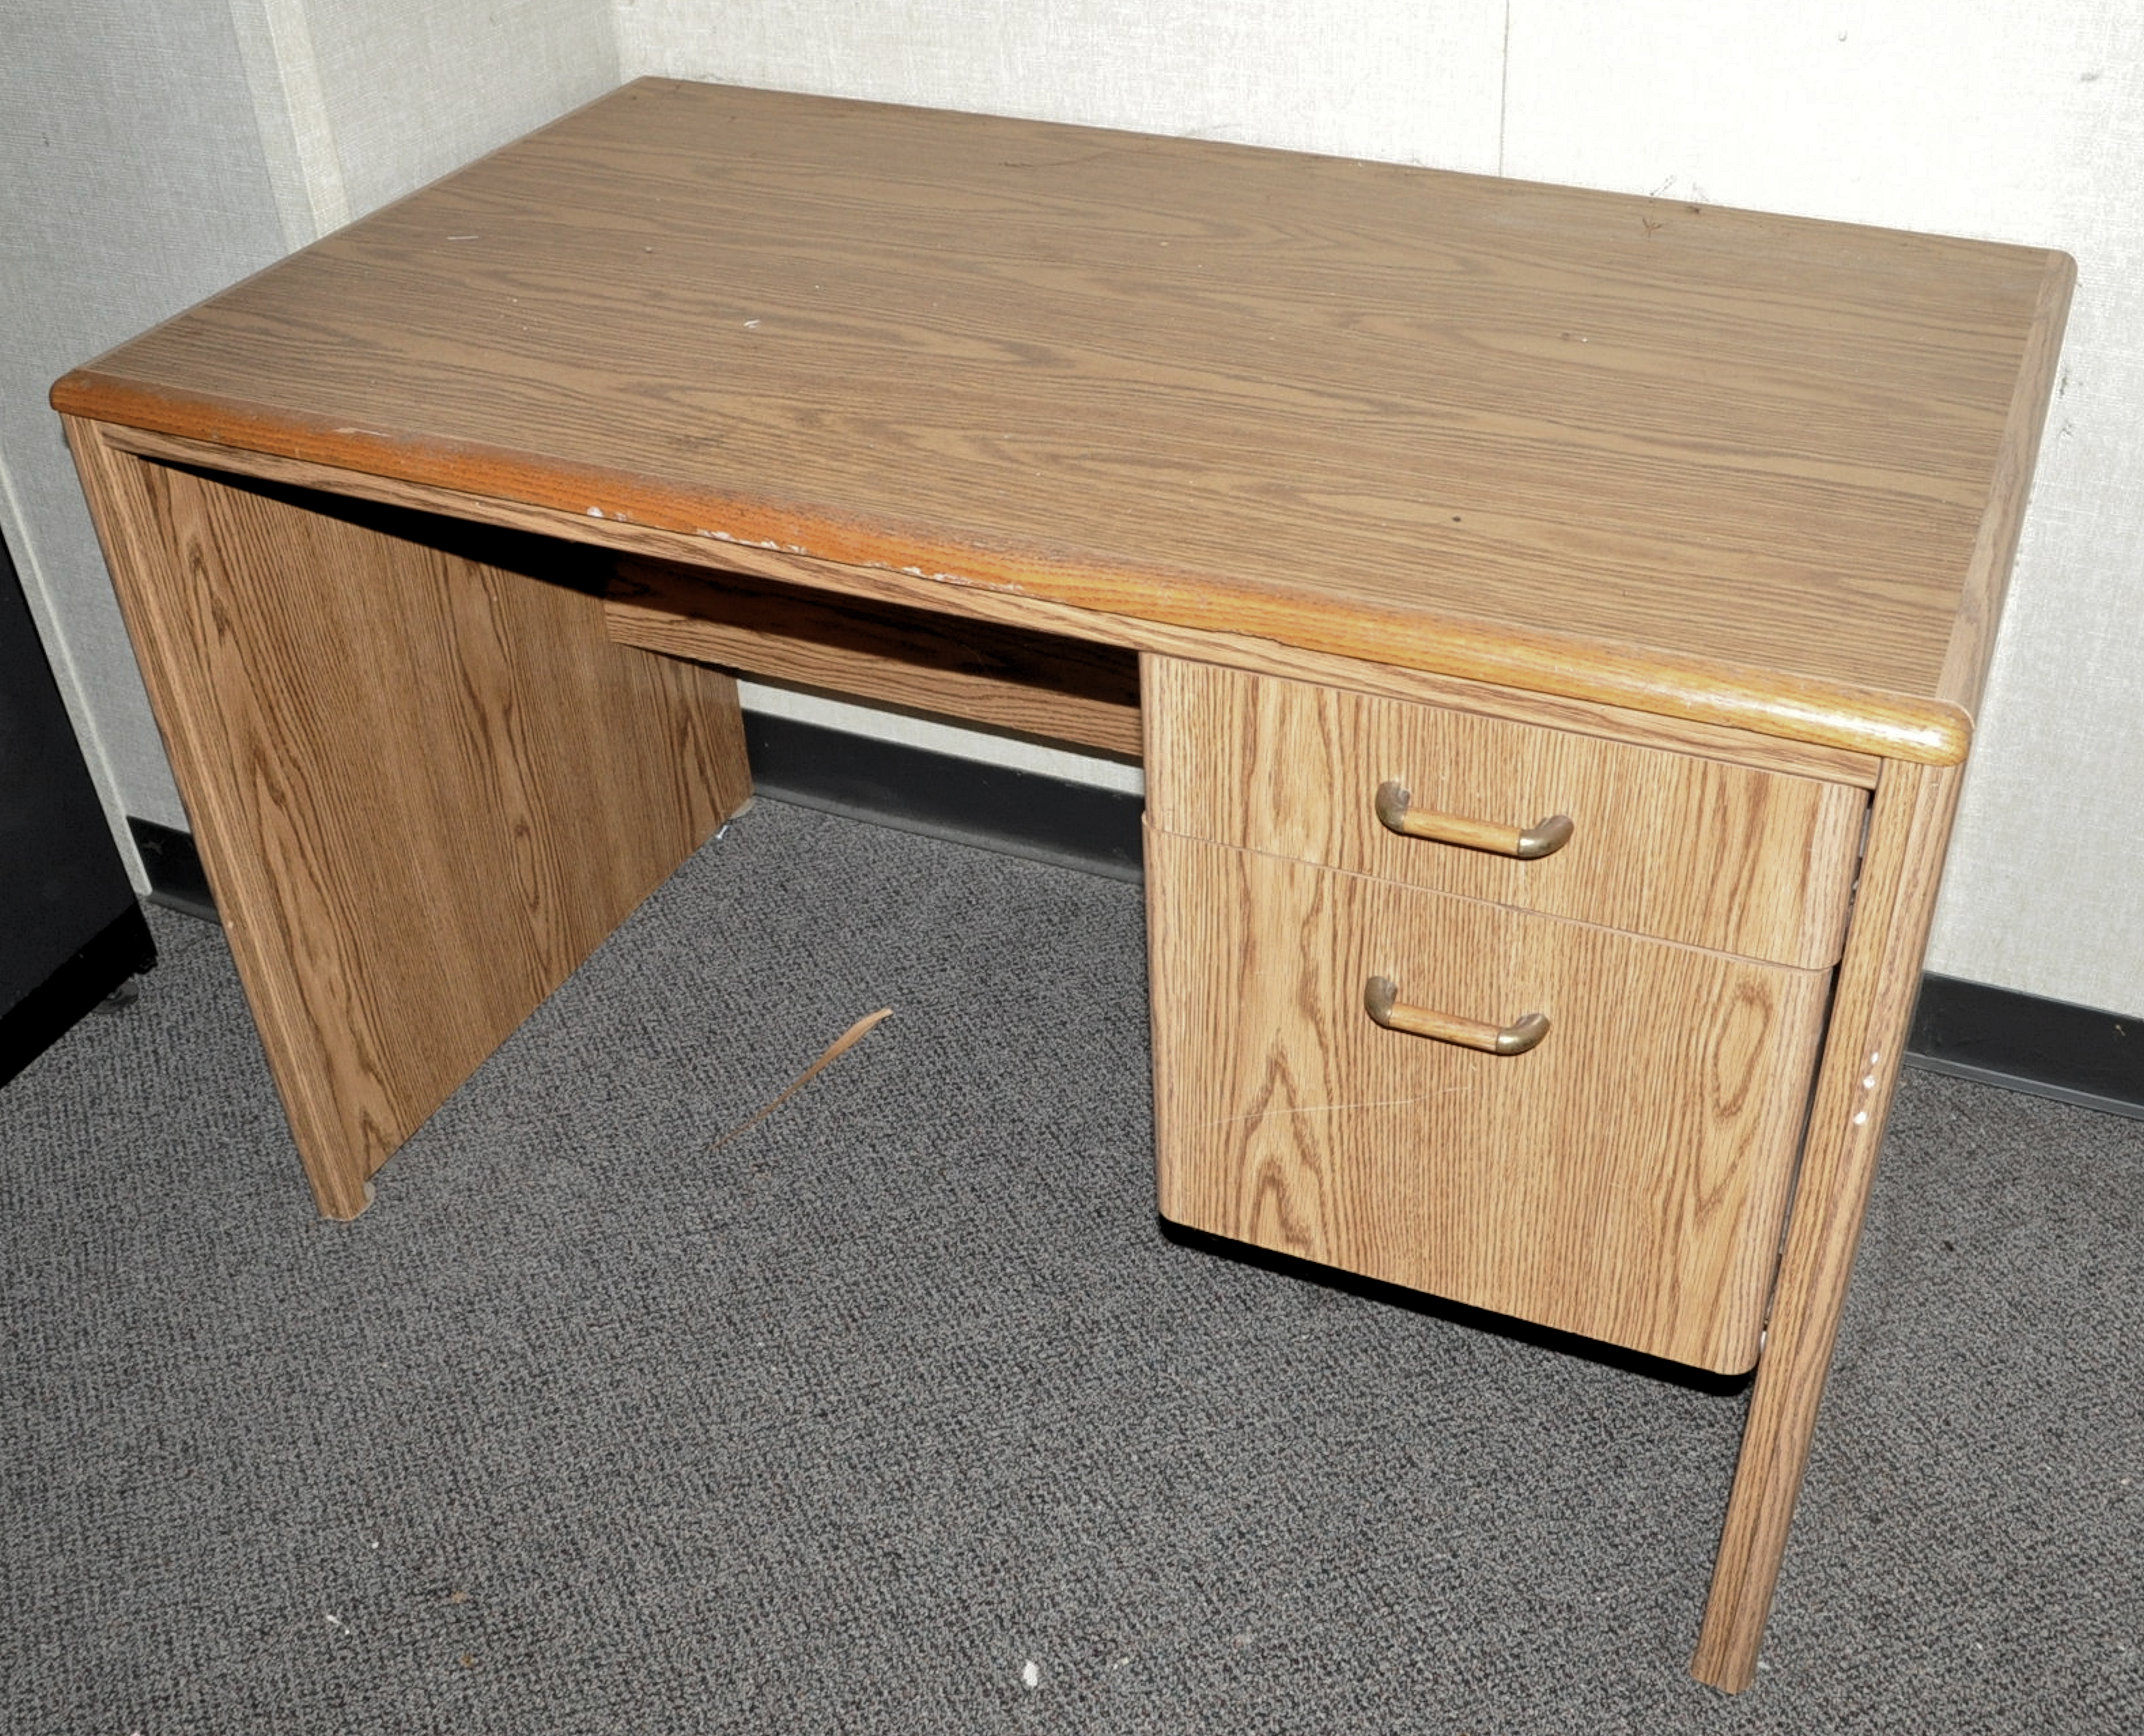 Lot-Cubicle Partition Stations and Components with Conference Table & Chairs (Must bring downstairs) - Image 6 of 6